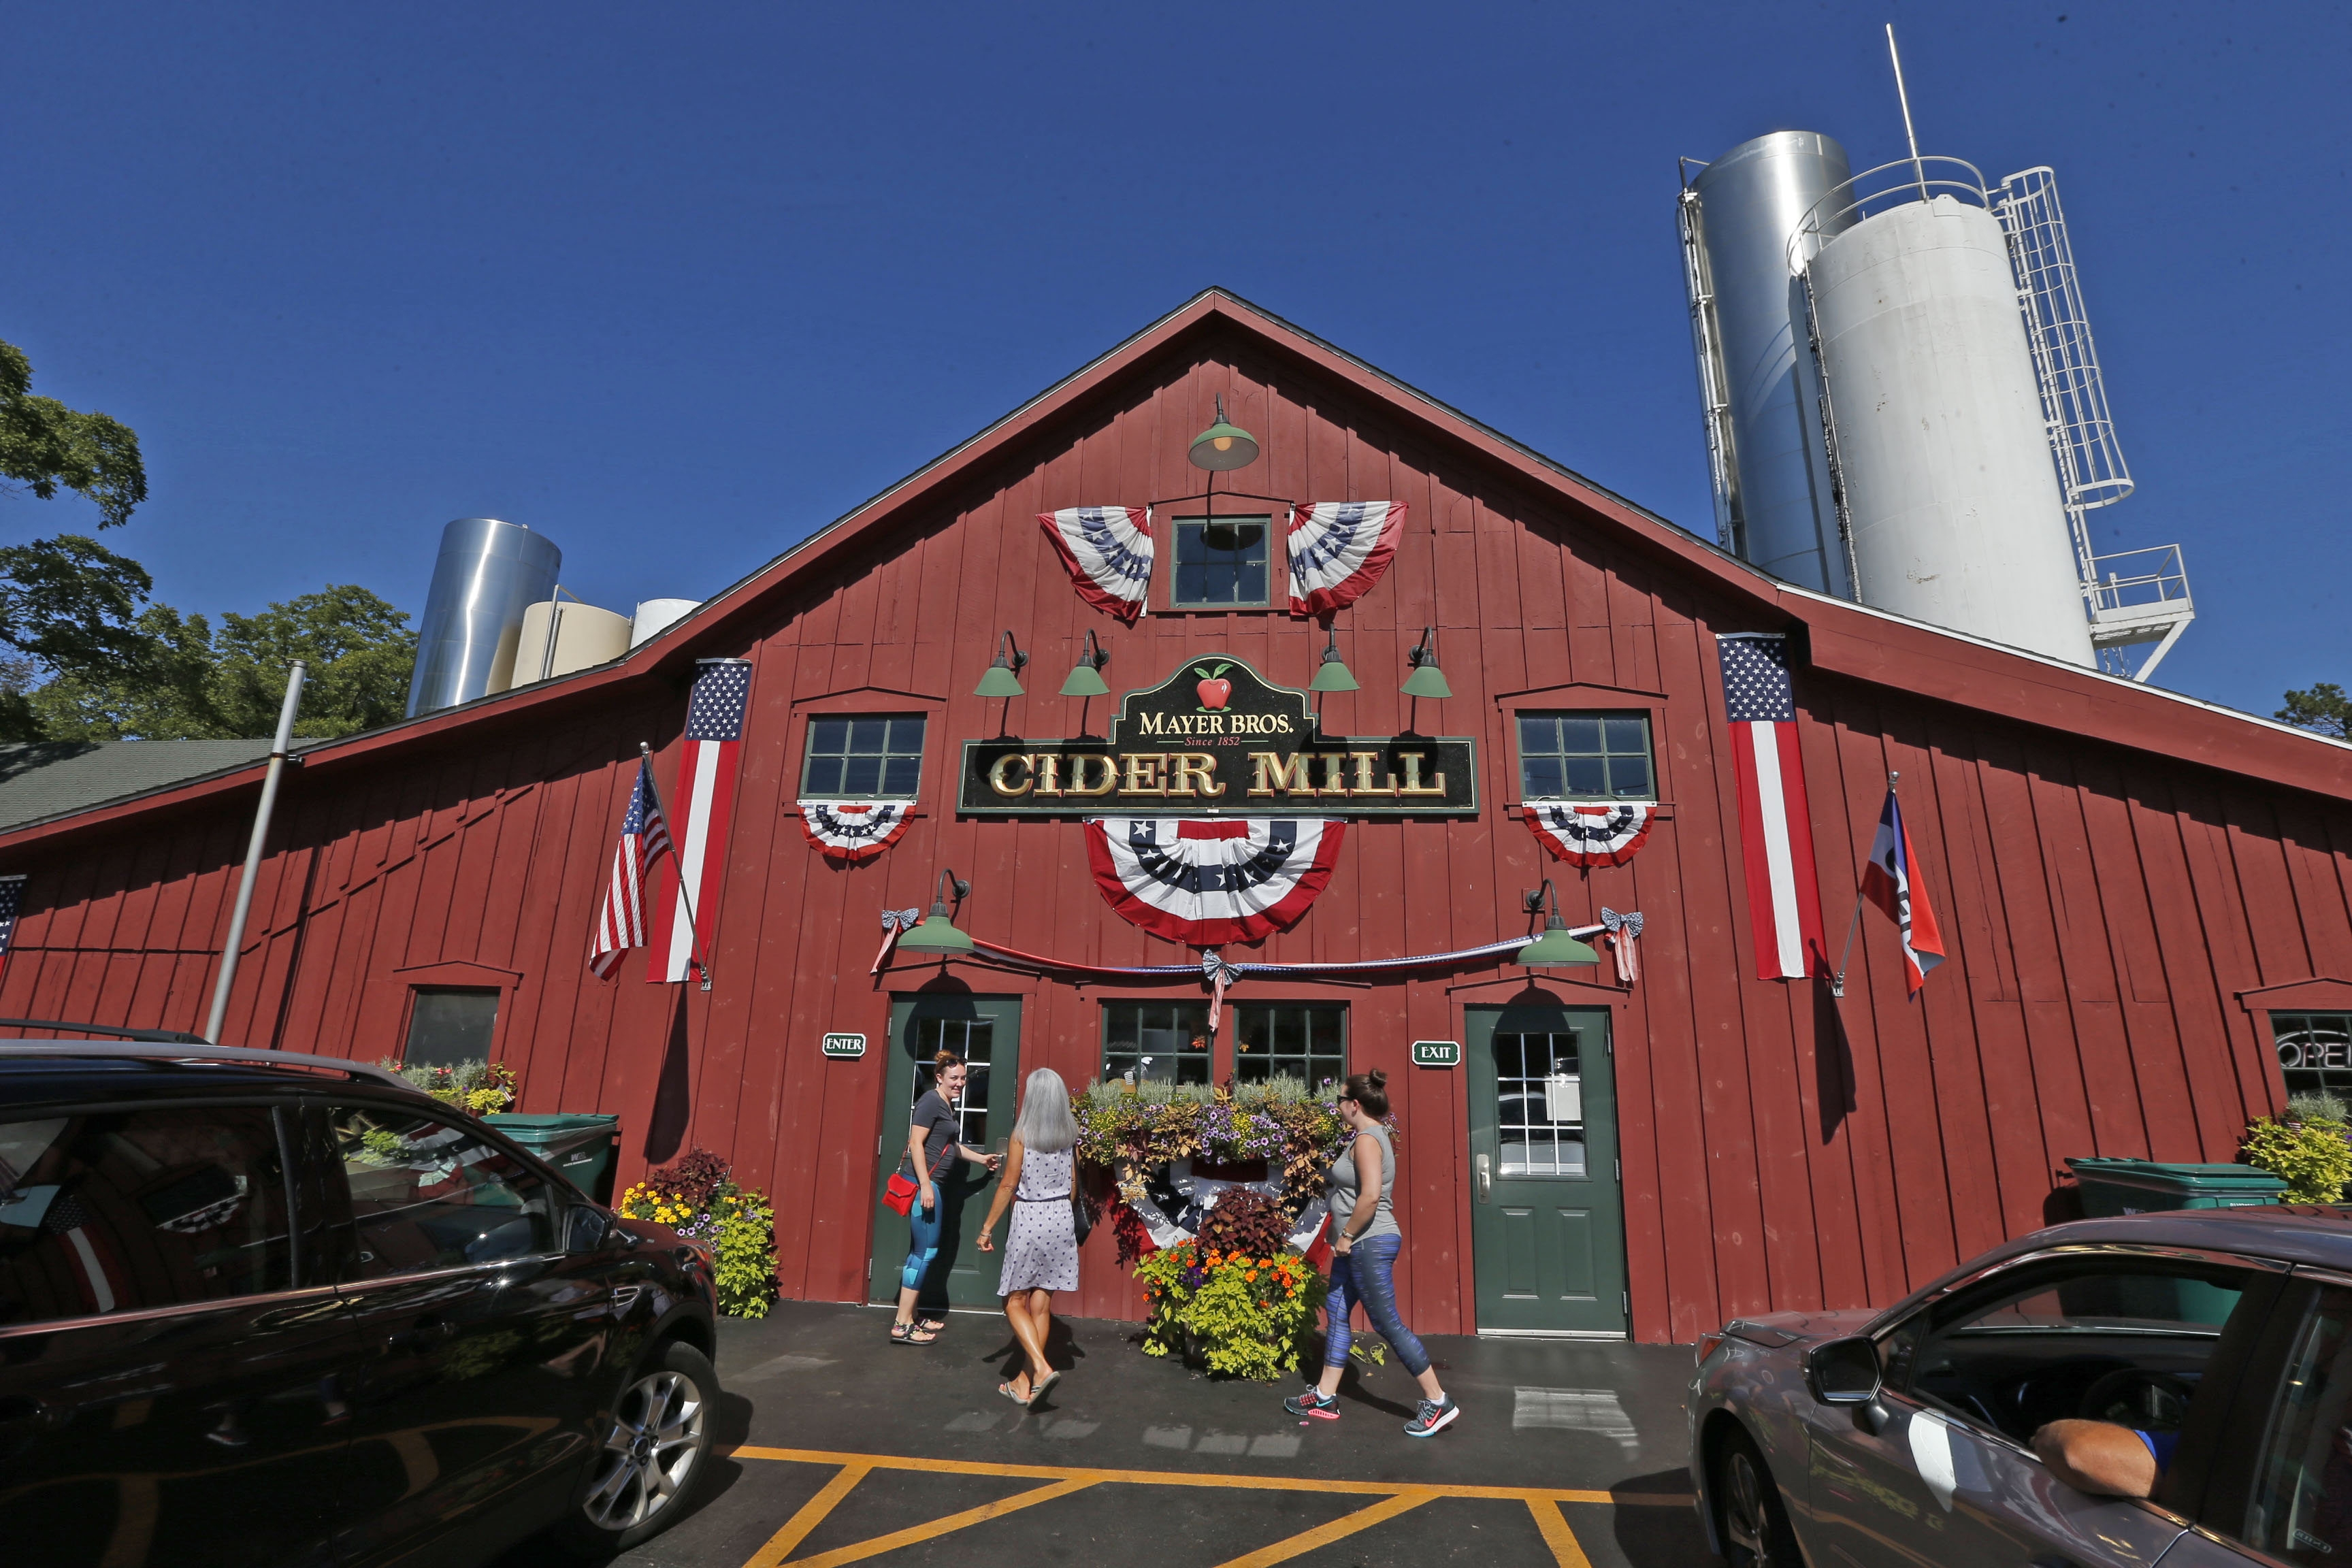 Mayer Brothers Cider Mill and Bakery has been delighting Western New York customers for 164 years. (Robert Kirkham/Buffalo News)